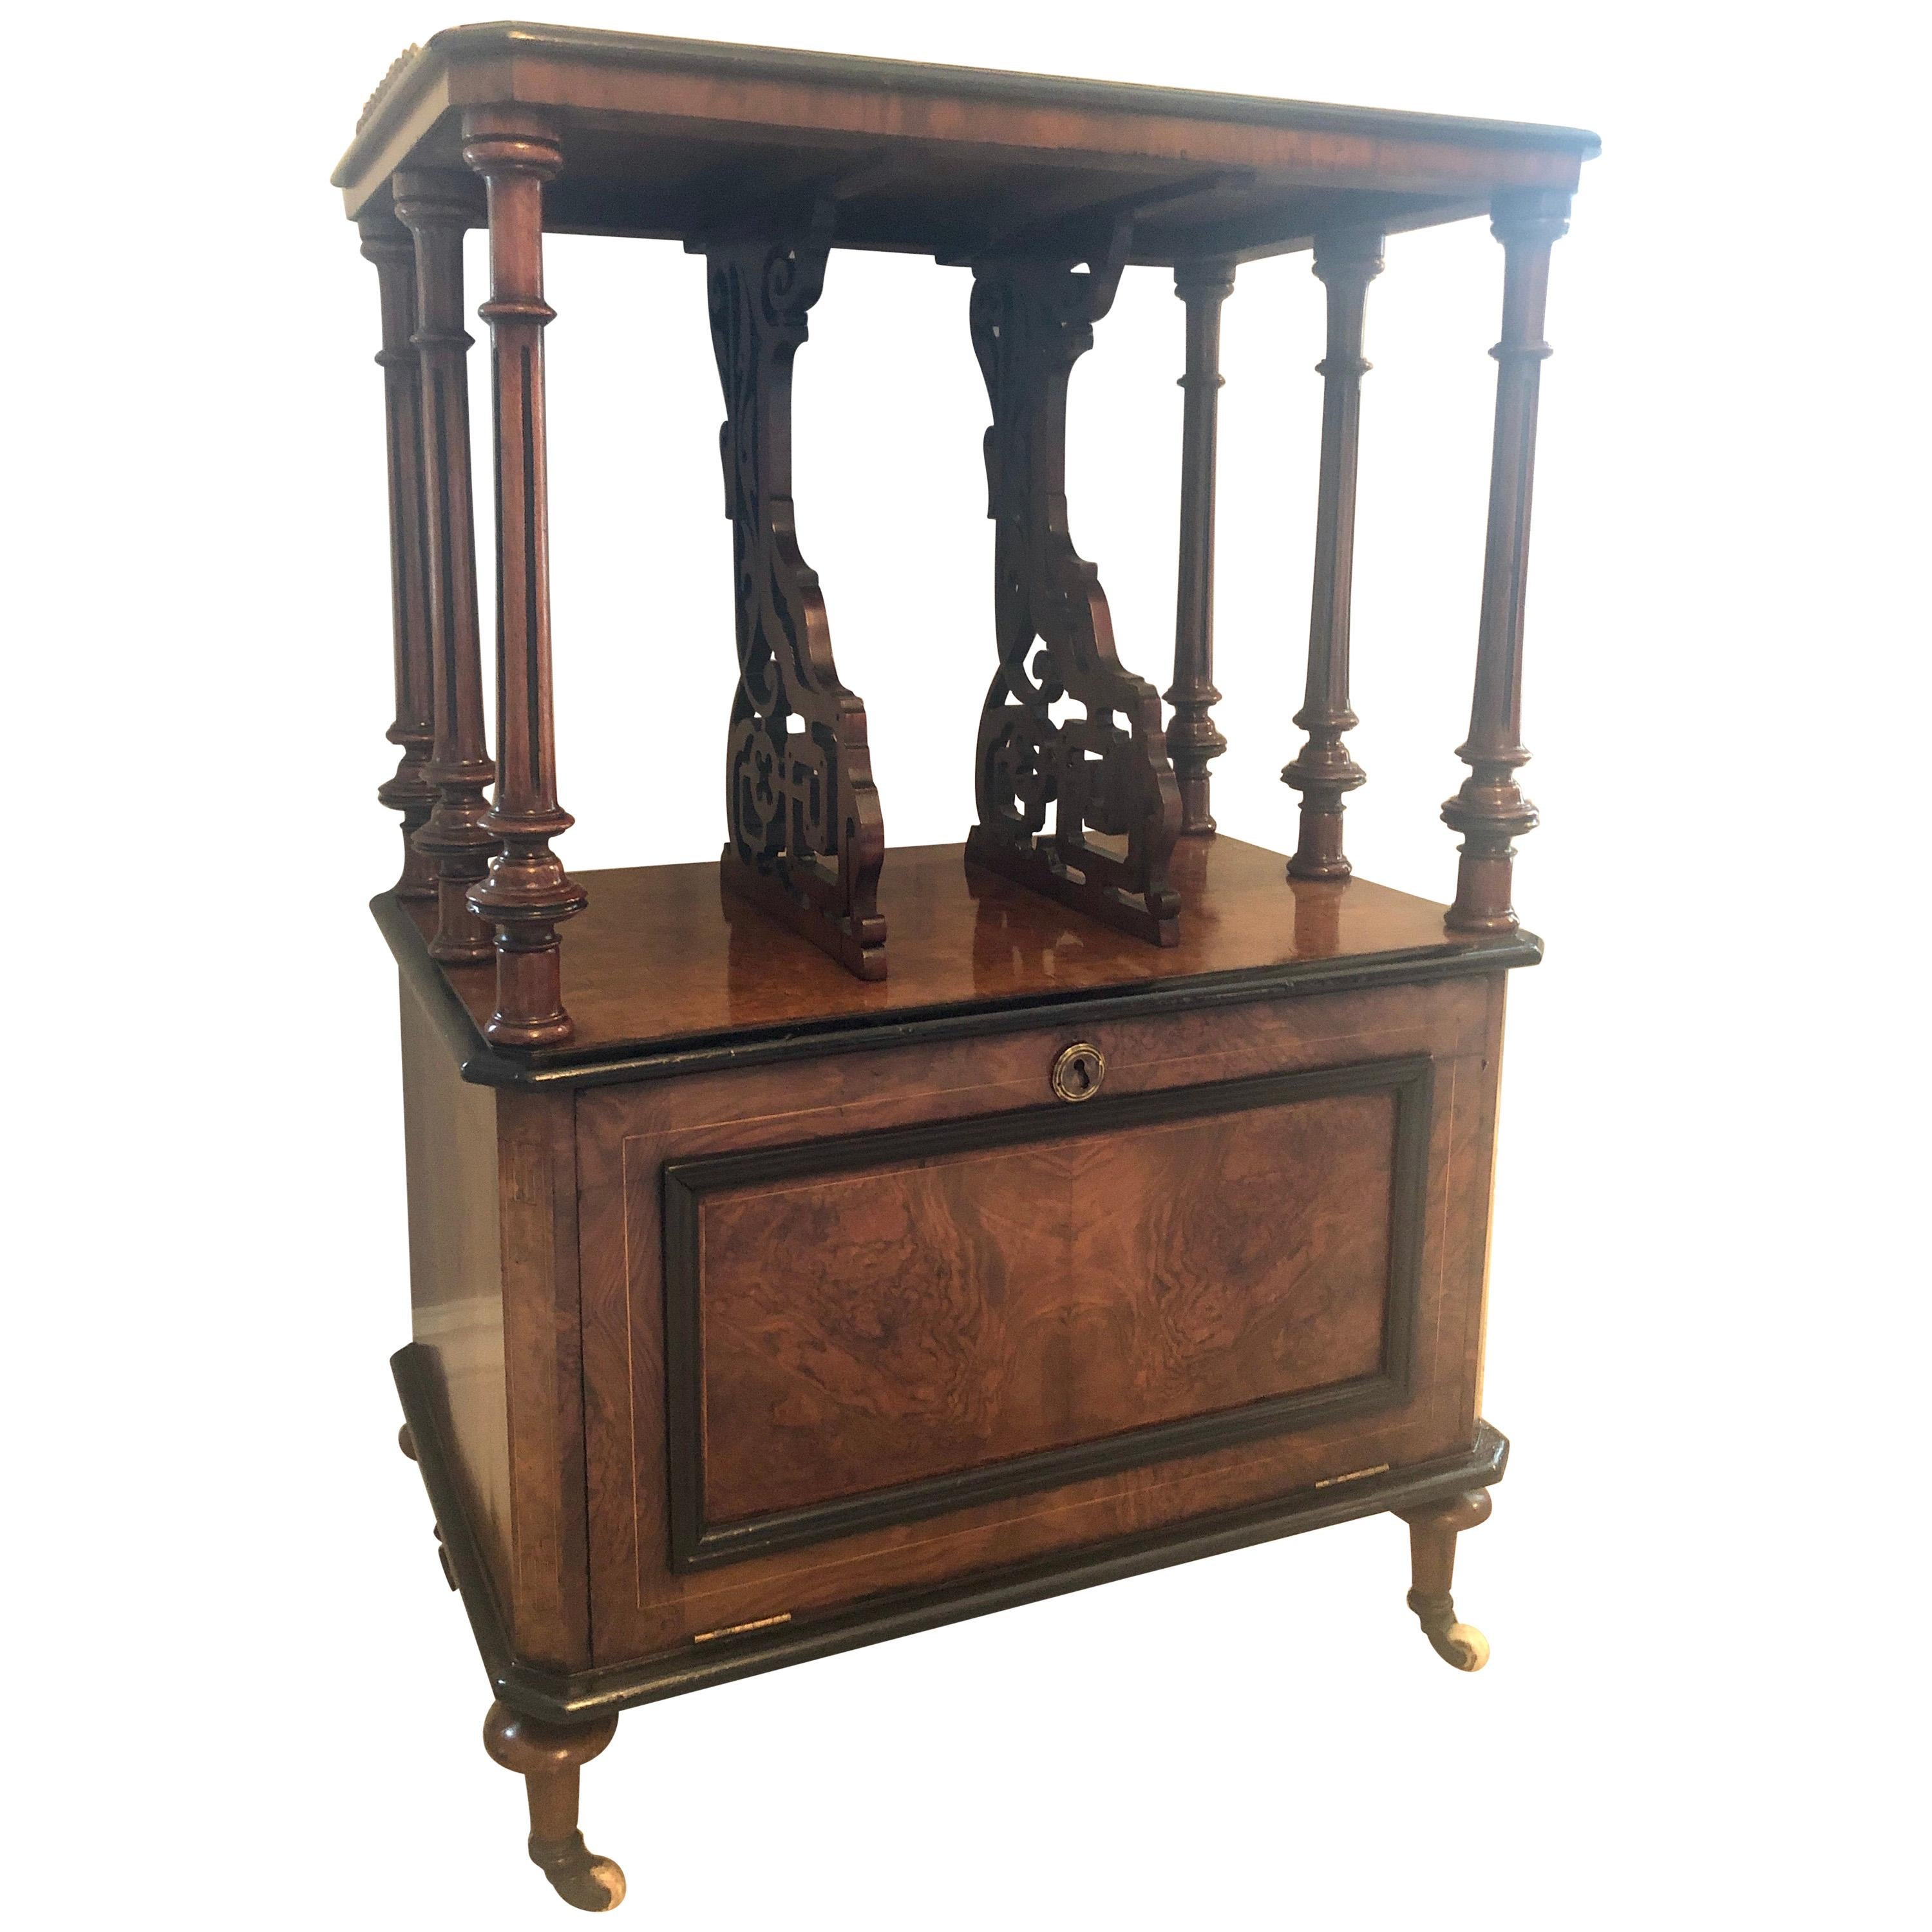 Outstanding Quality Victorian Inlaid Burr Walnut Music Cabinet/Canterbury